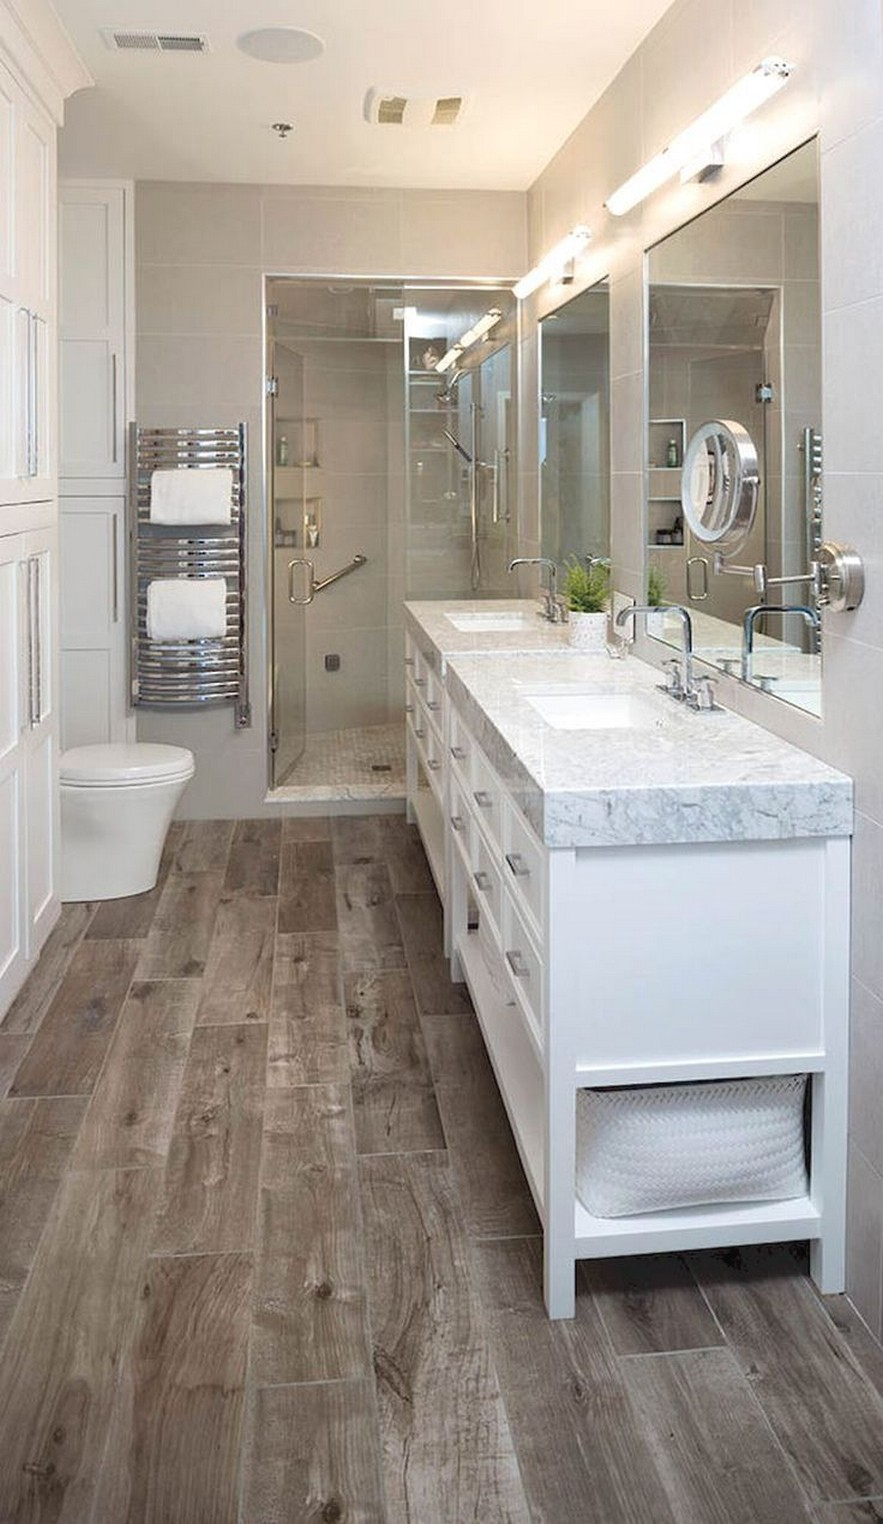 70 Master Bathroom Remodeling For Man and Woman Home Decor 22